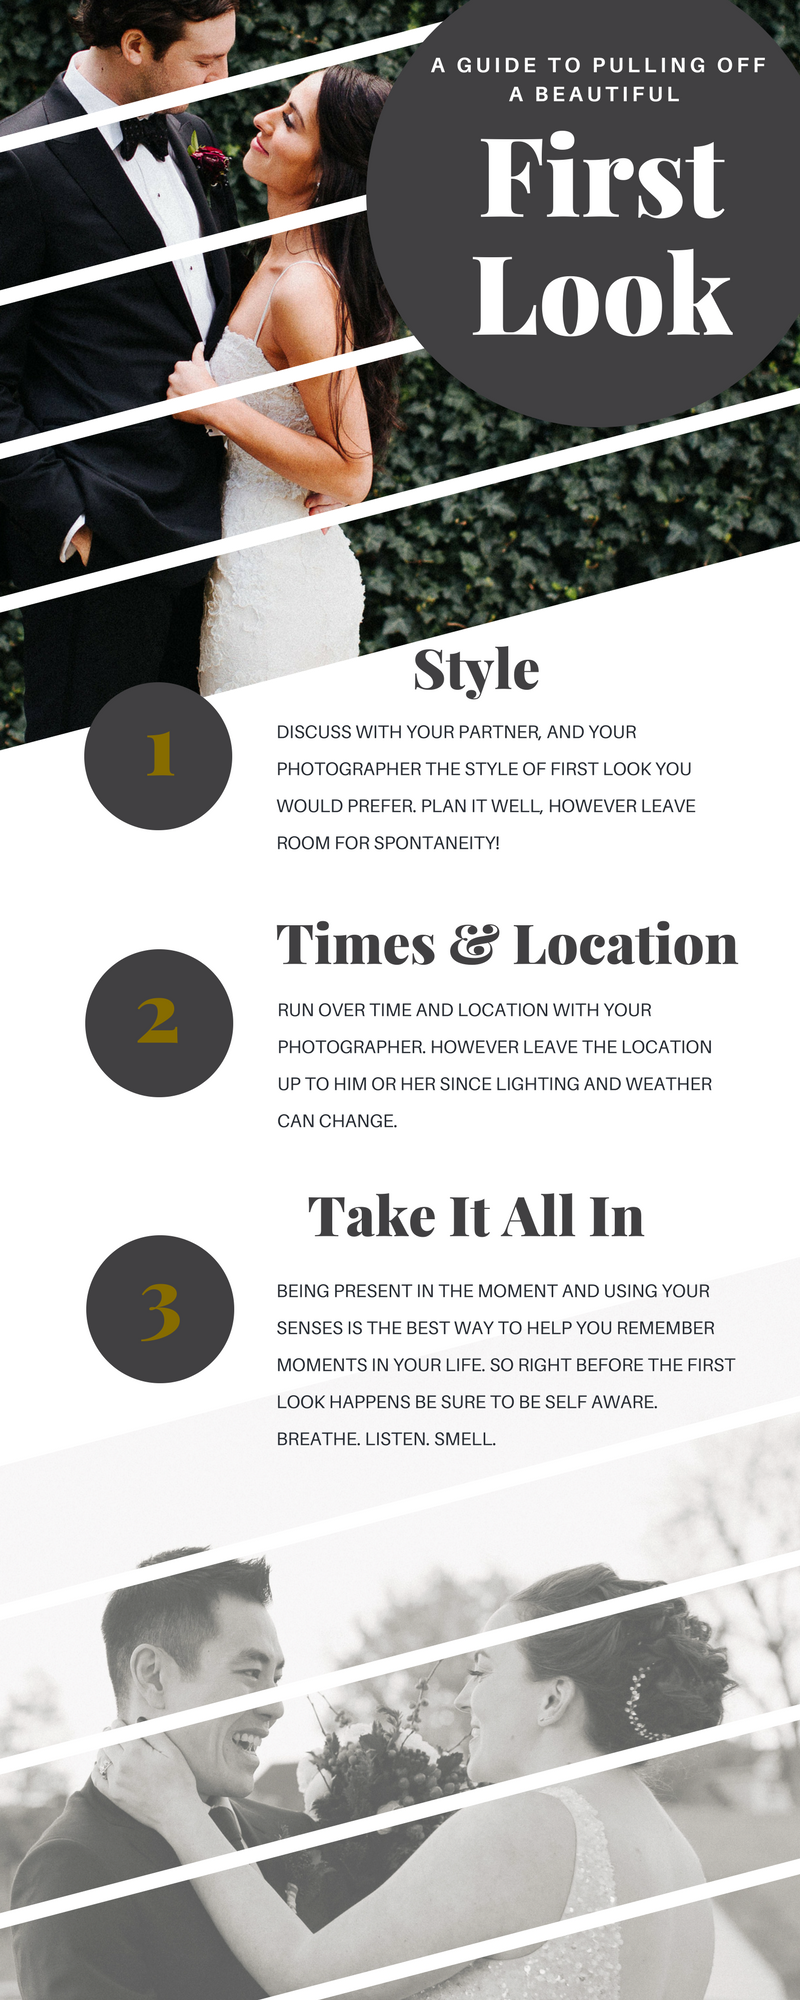 A Guide To Pulling Off A Beautiful First Look - Click the download button below to download the cheat sheet.